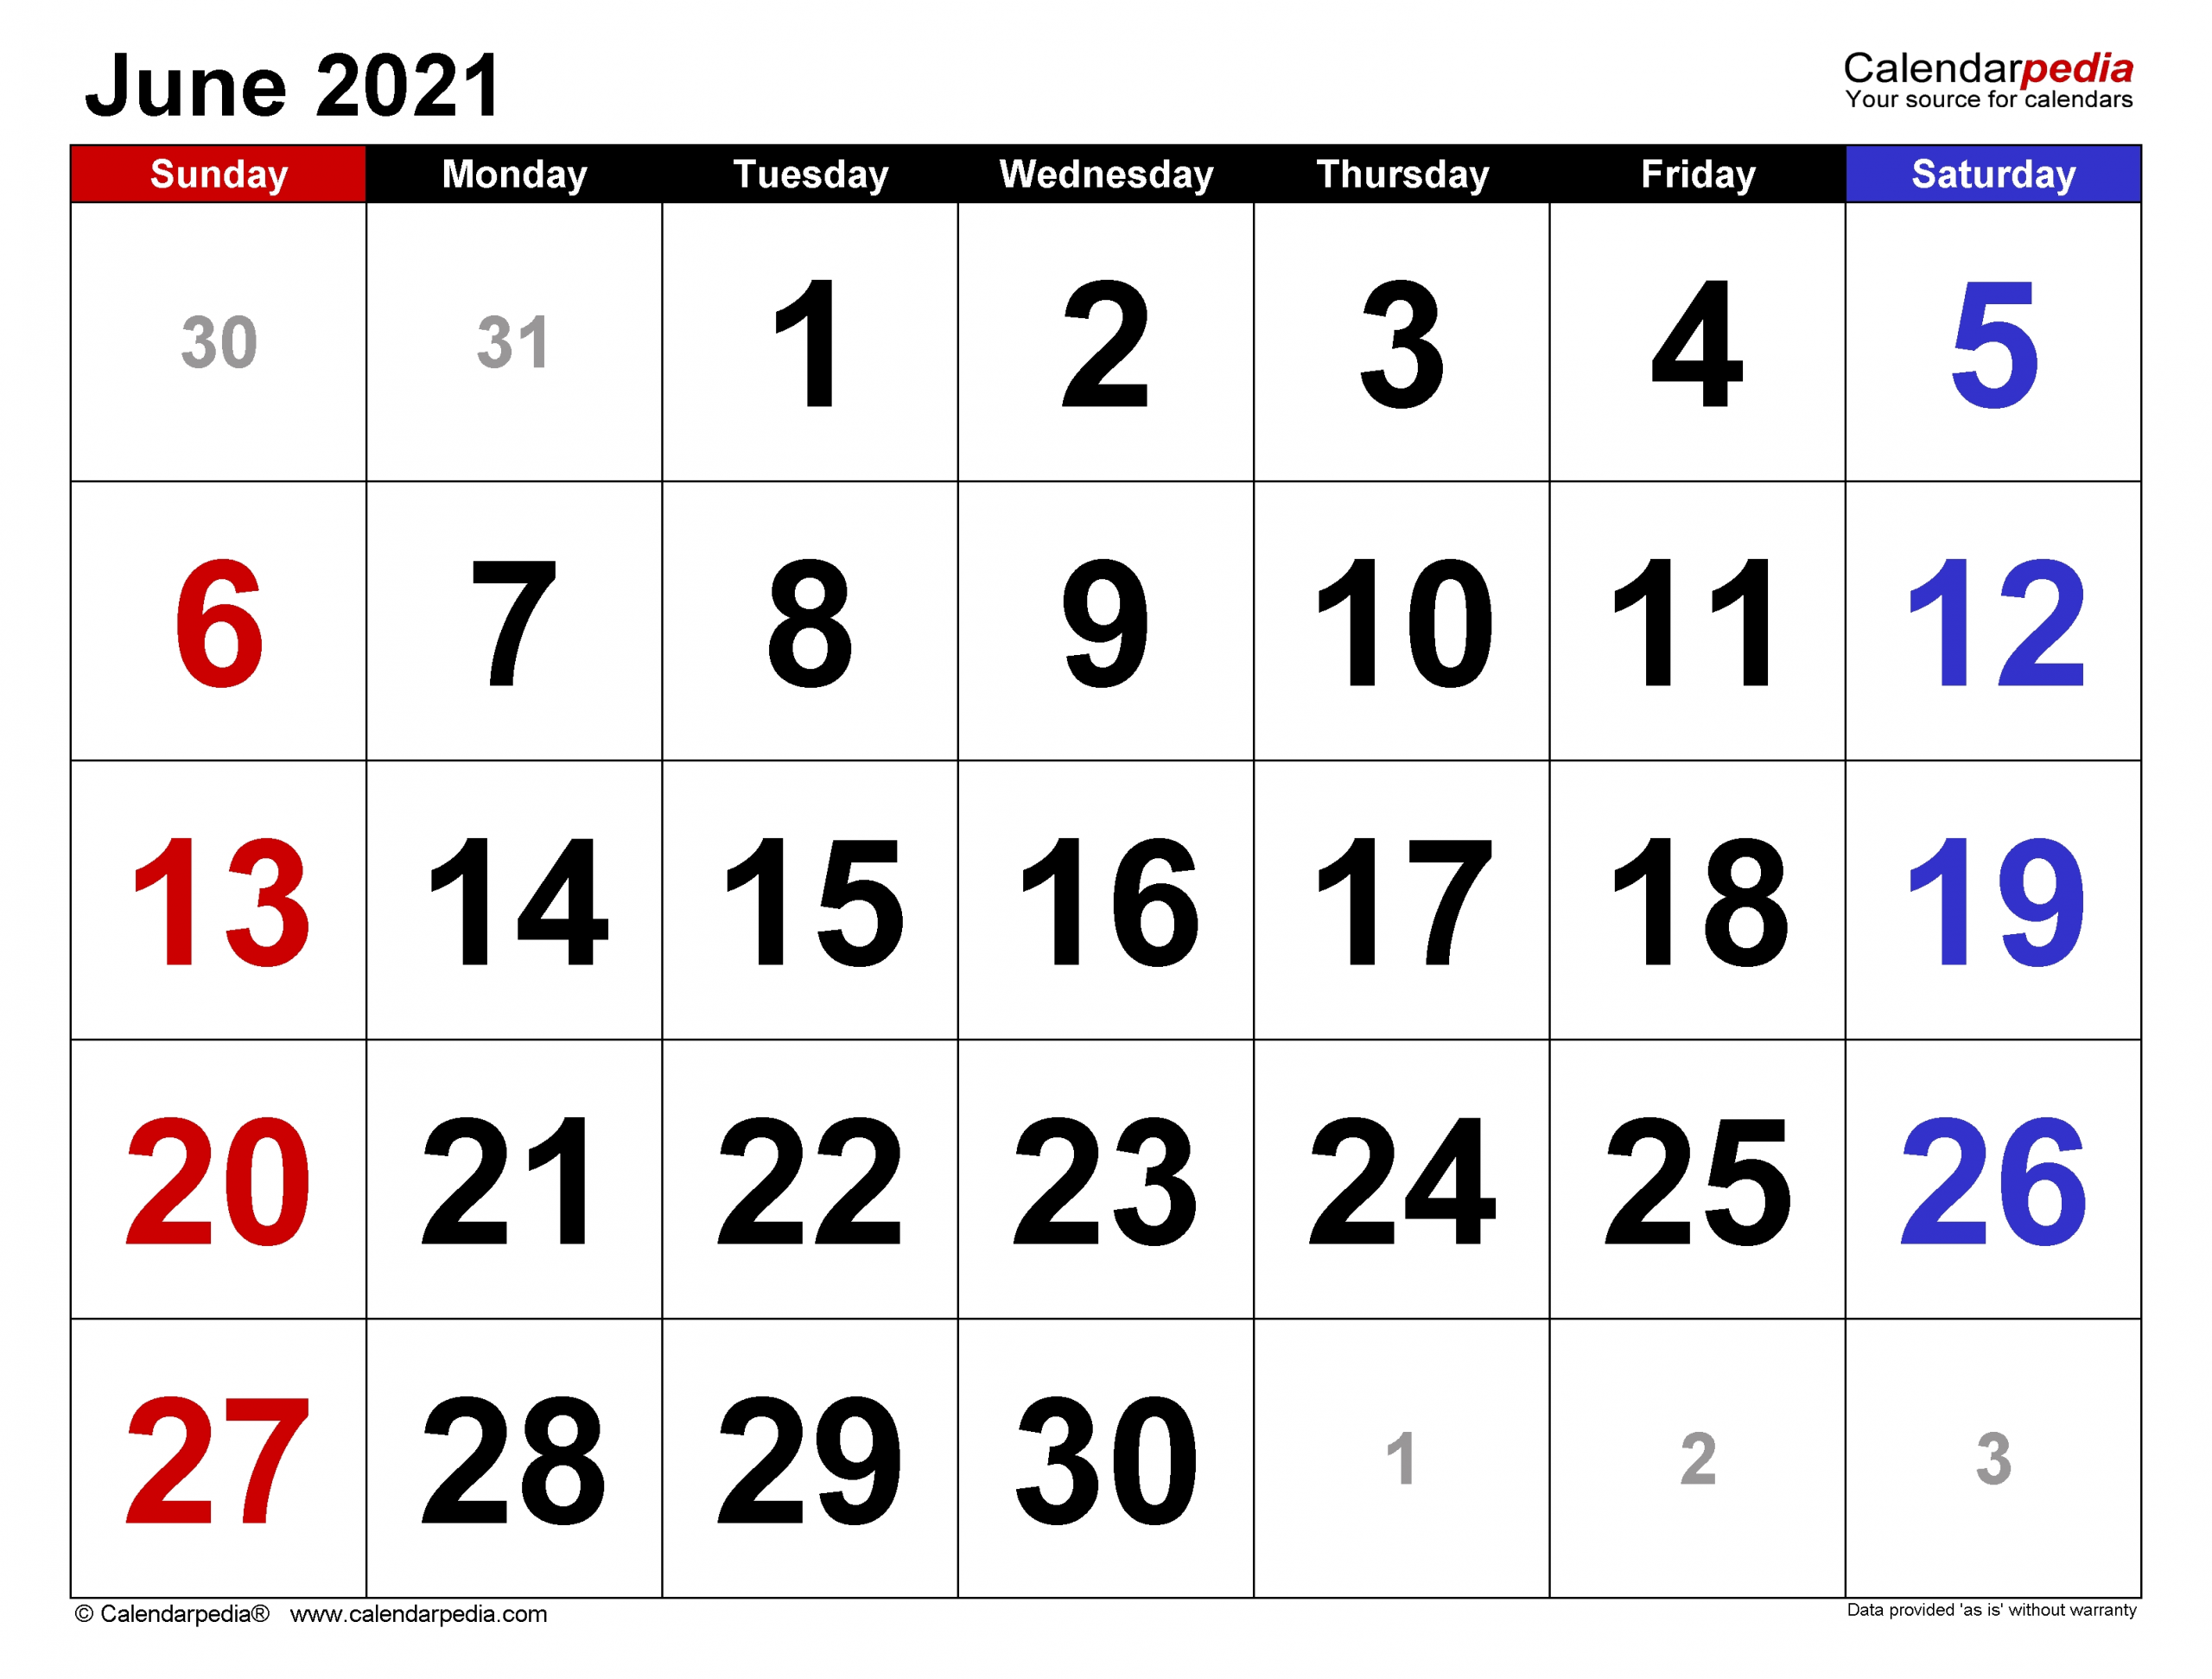 June 2021 Calendar | Templates For Word, Excel And Pdf  Monthly Payment Sheet June, 2021